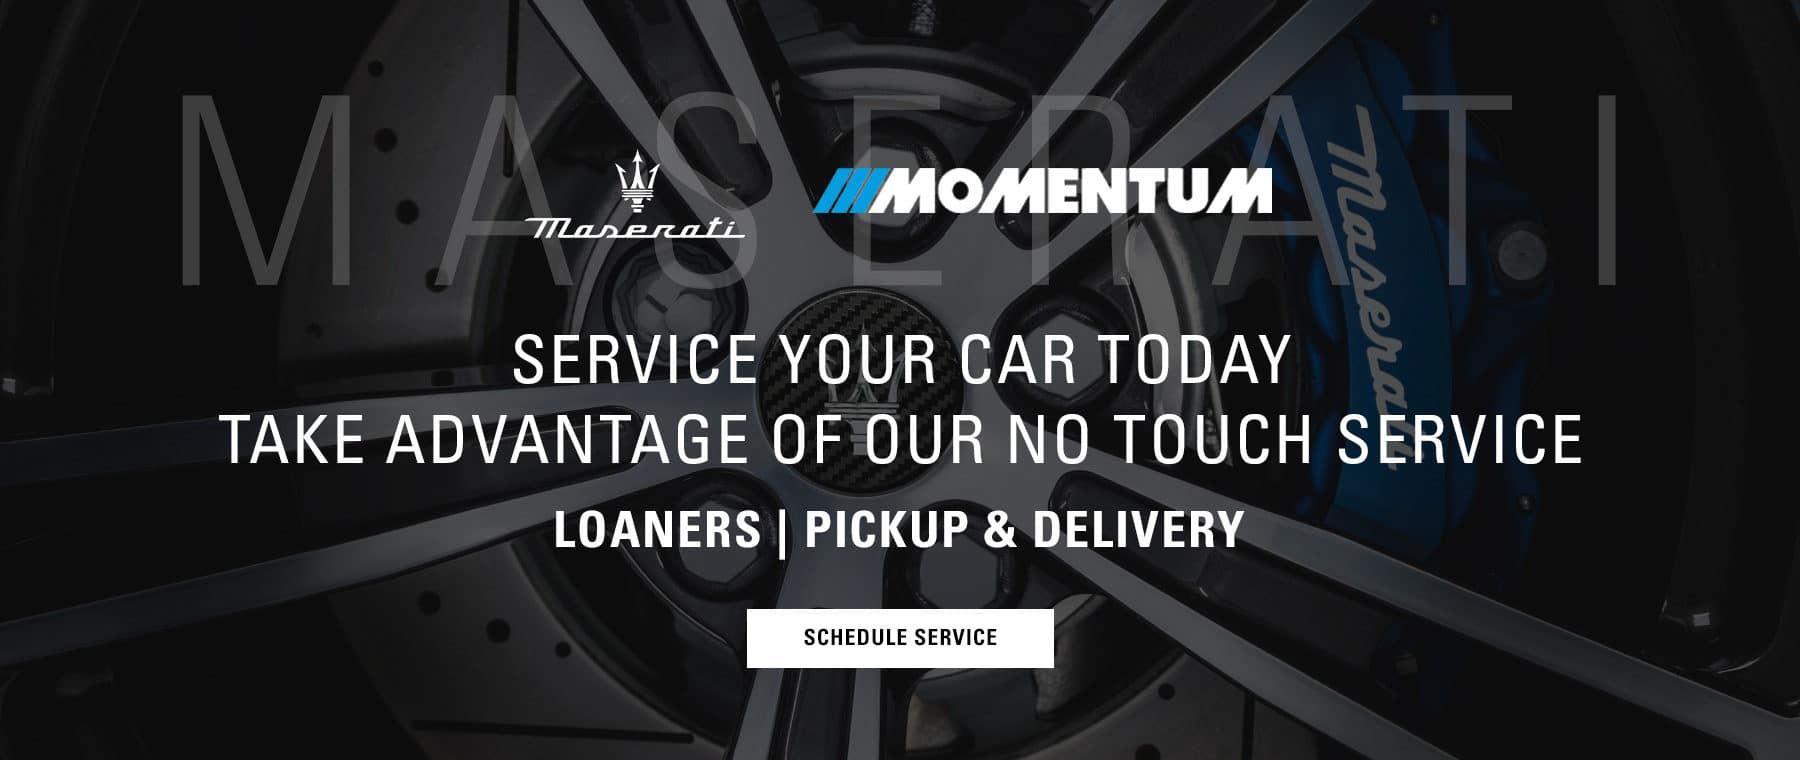 Service your car today, pick up and delivery